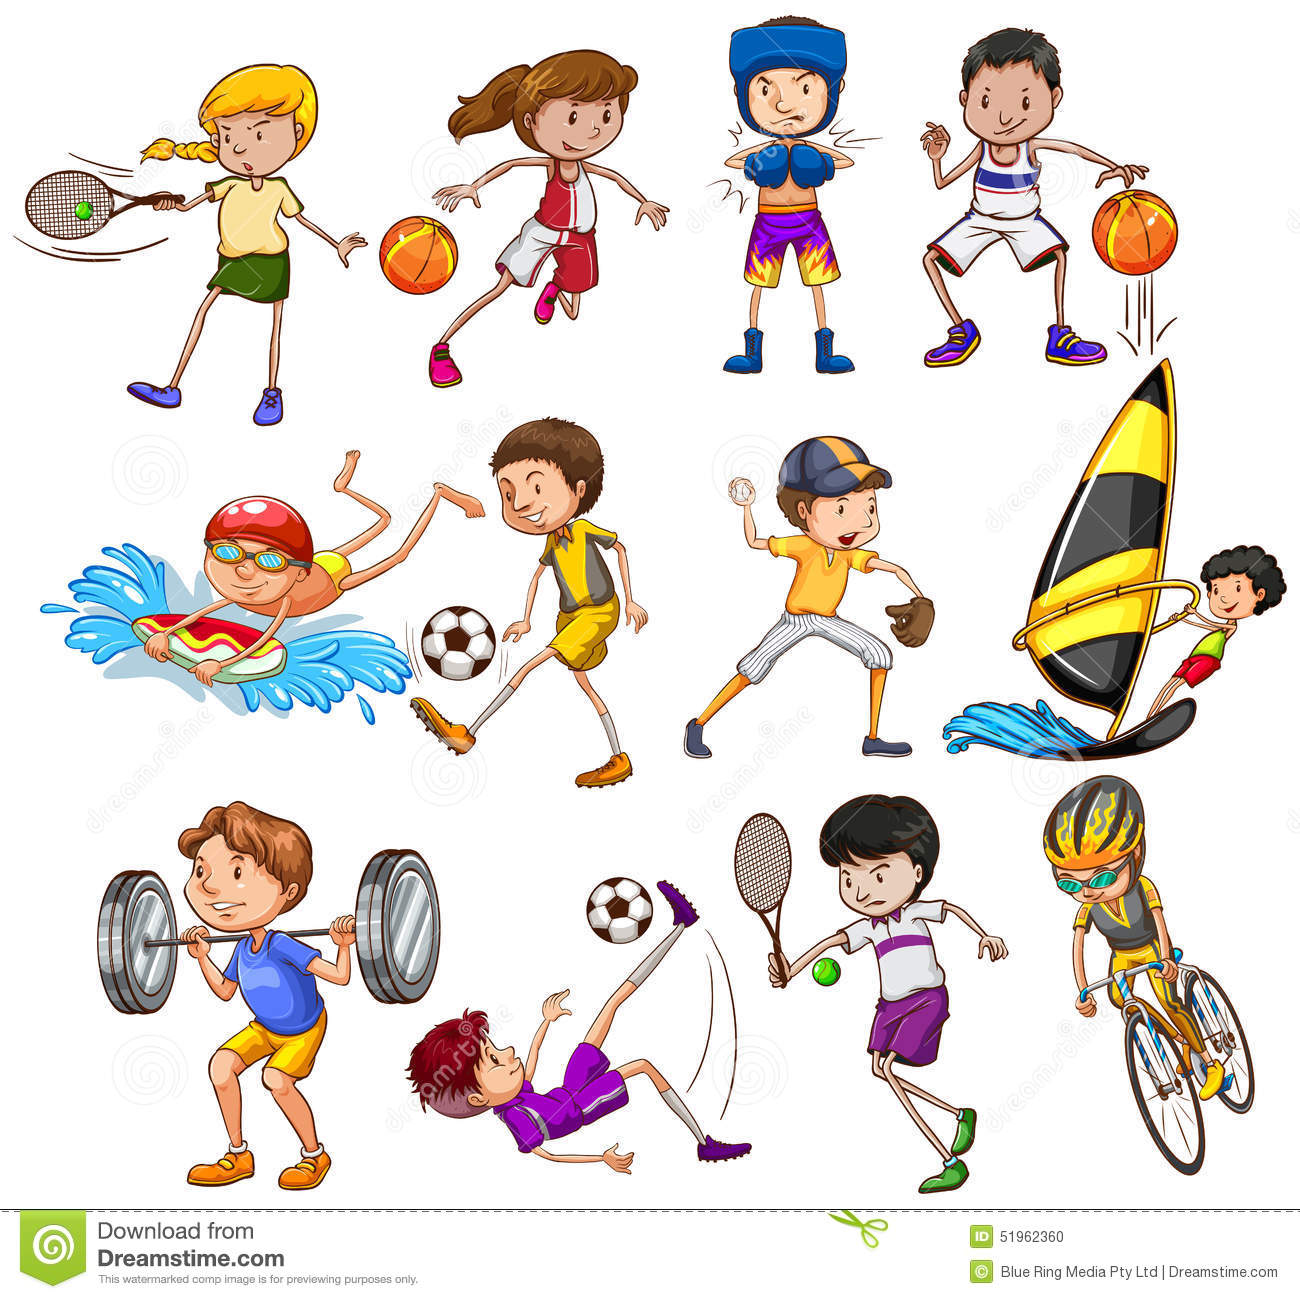 sports different children kinds playing exercise clipart illustration vector dreamstime athlete preview academy development